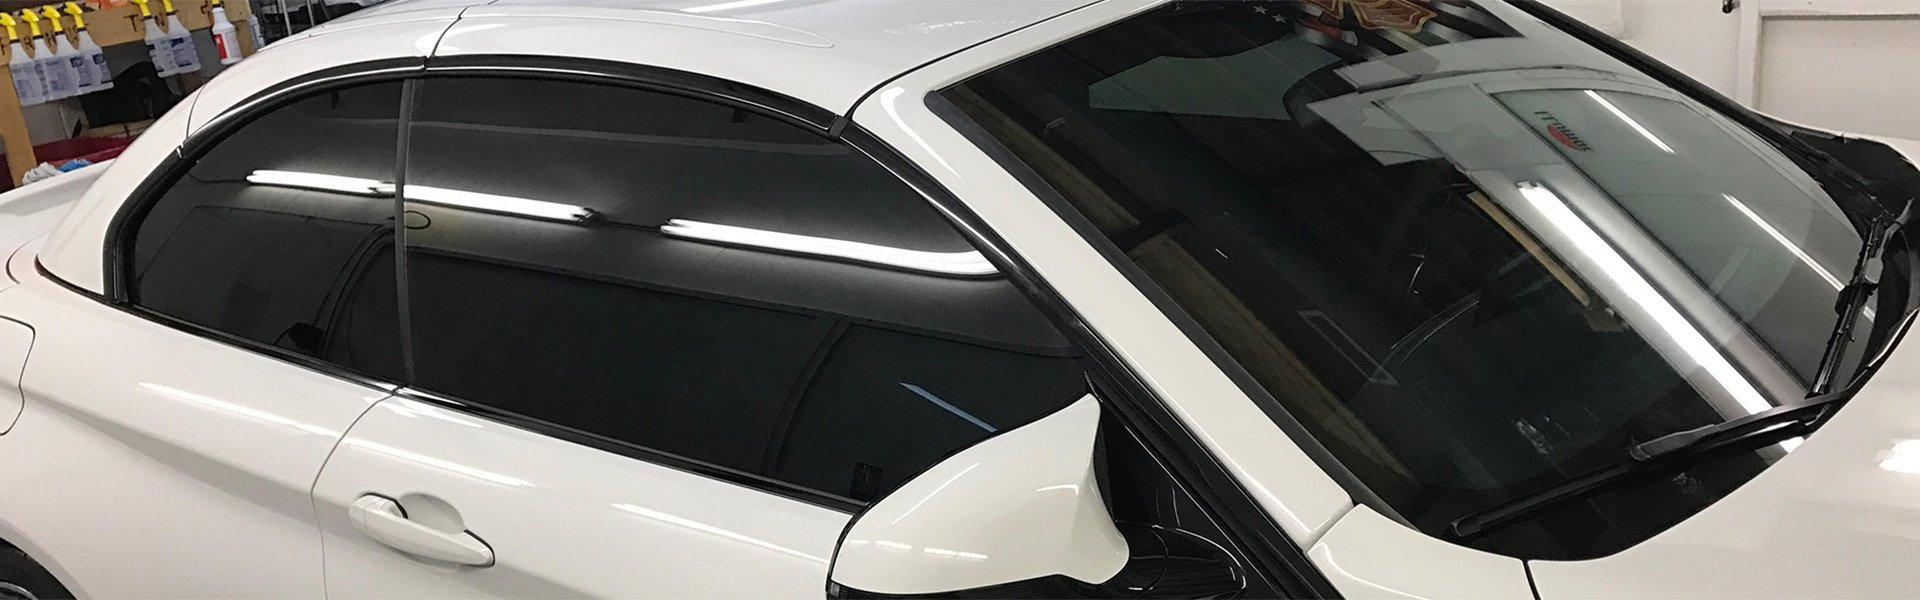 windows tint services for Automotive |Fire House Window Tint